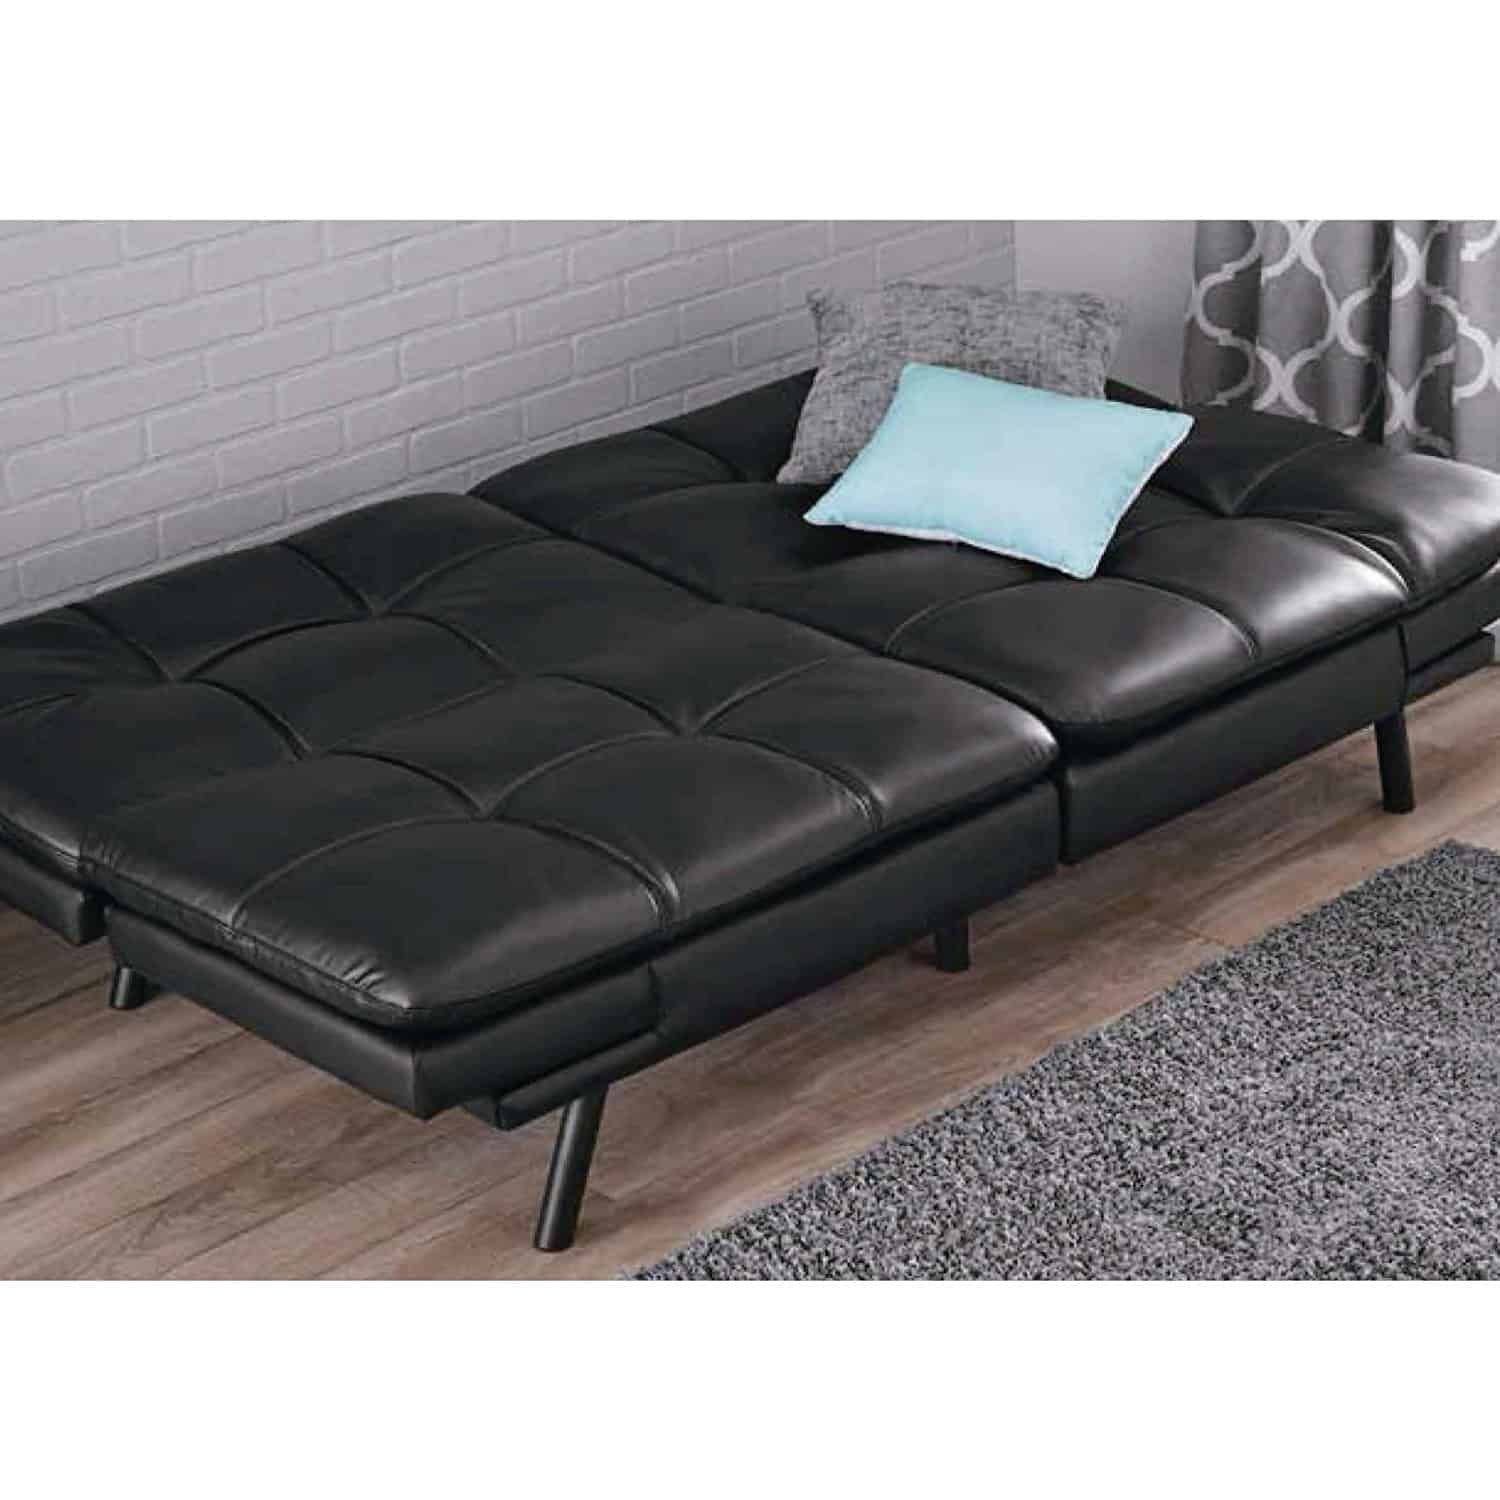 sofa beds at amazon natuzzi editions leather reviews best sleeper and november 2018